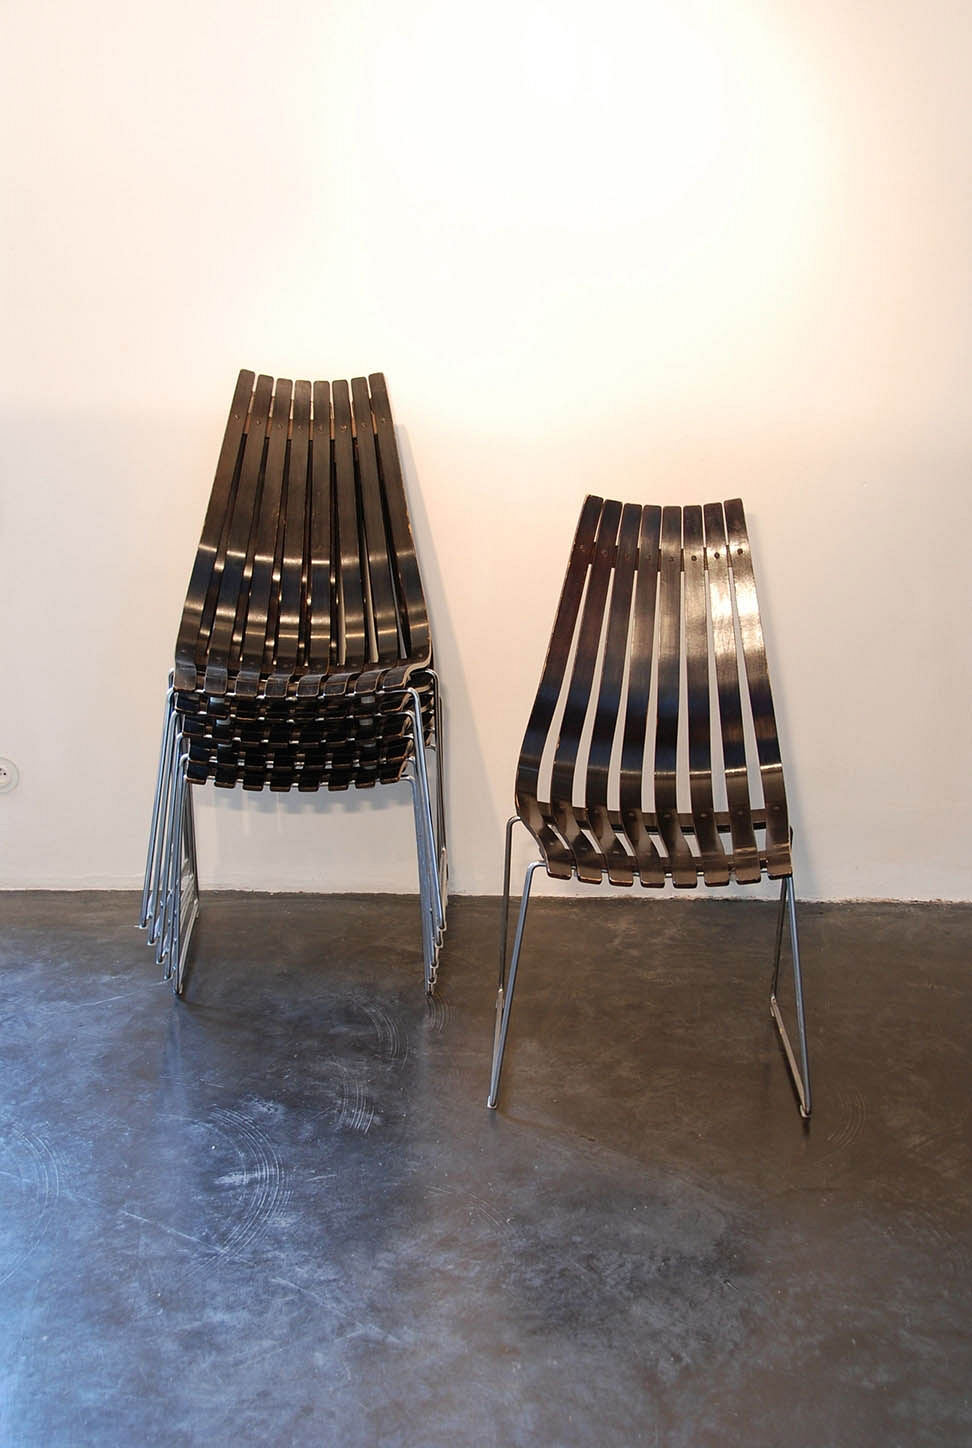 HANS BRATTRUD CHAIRS